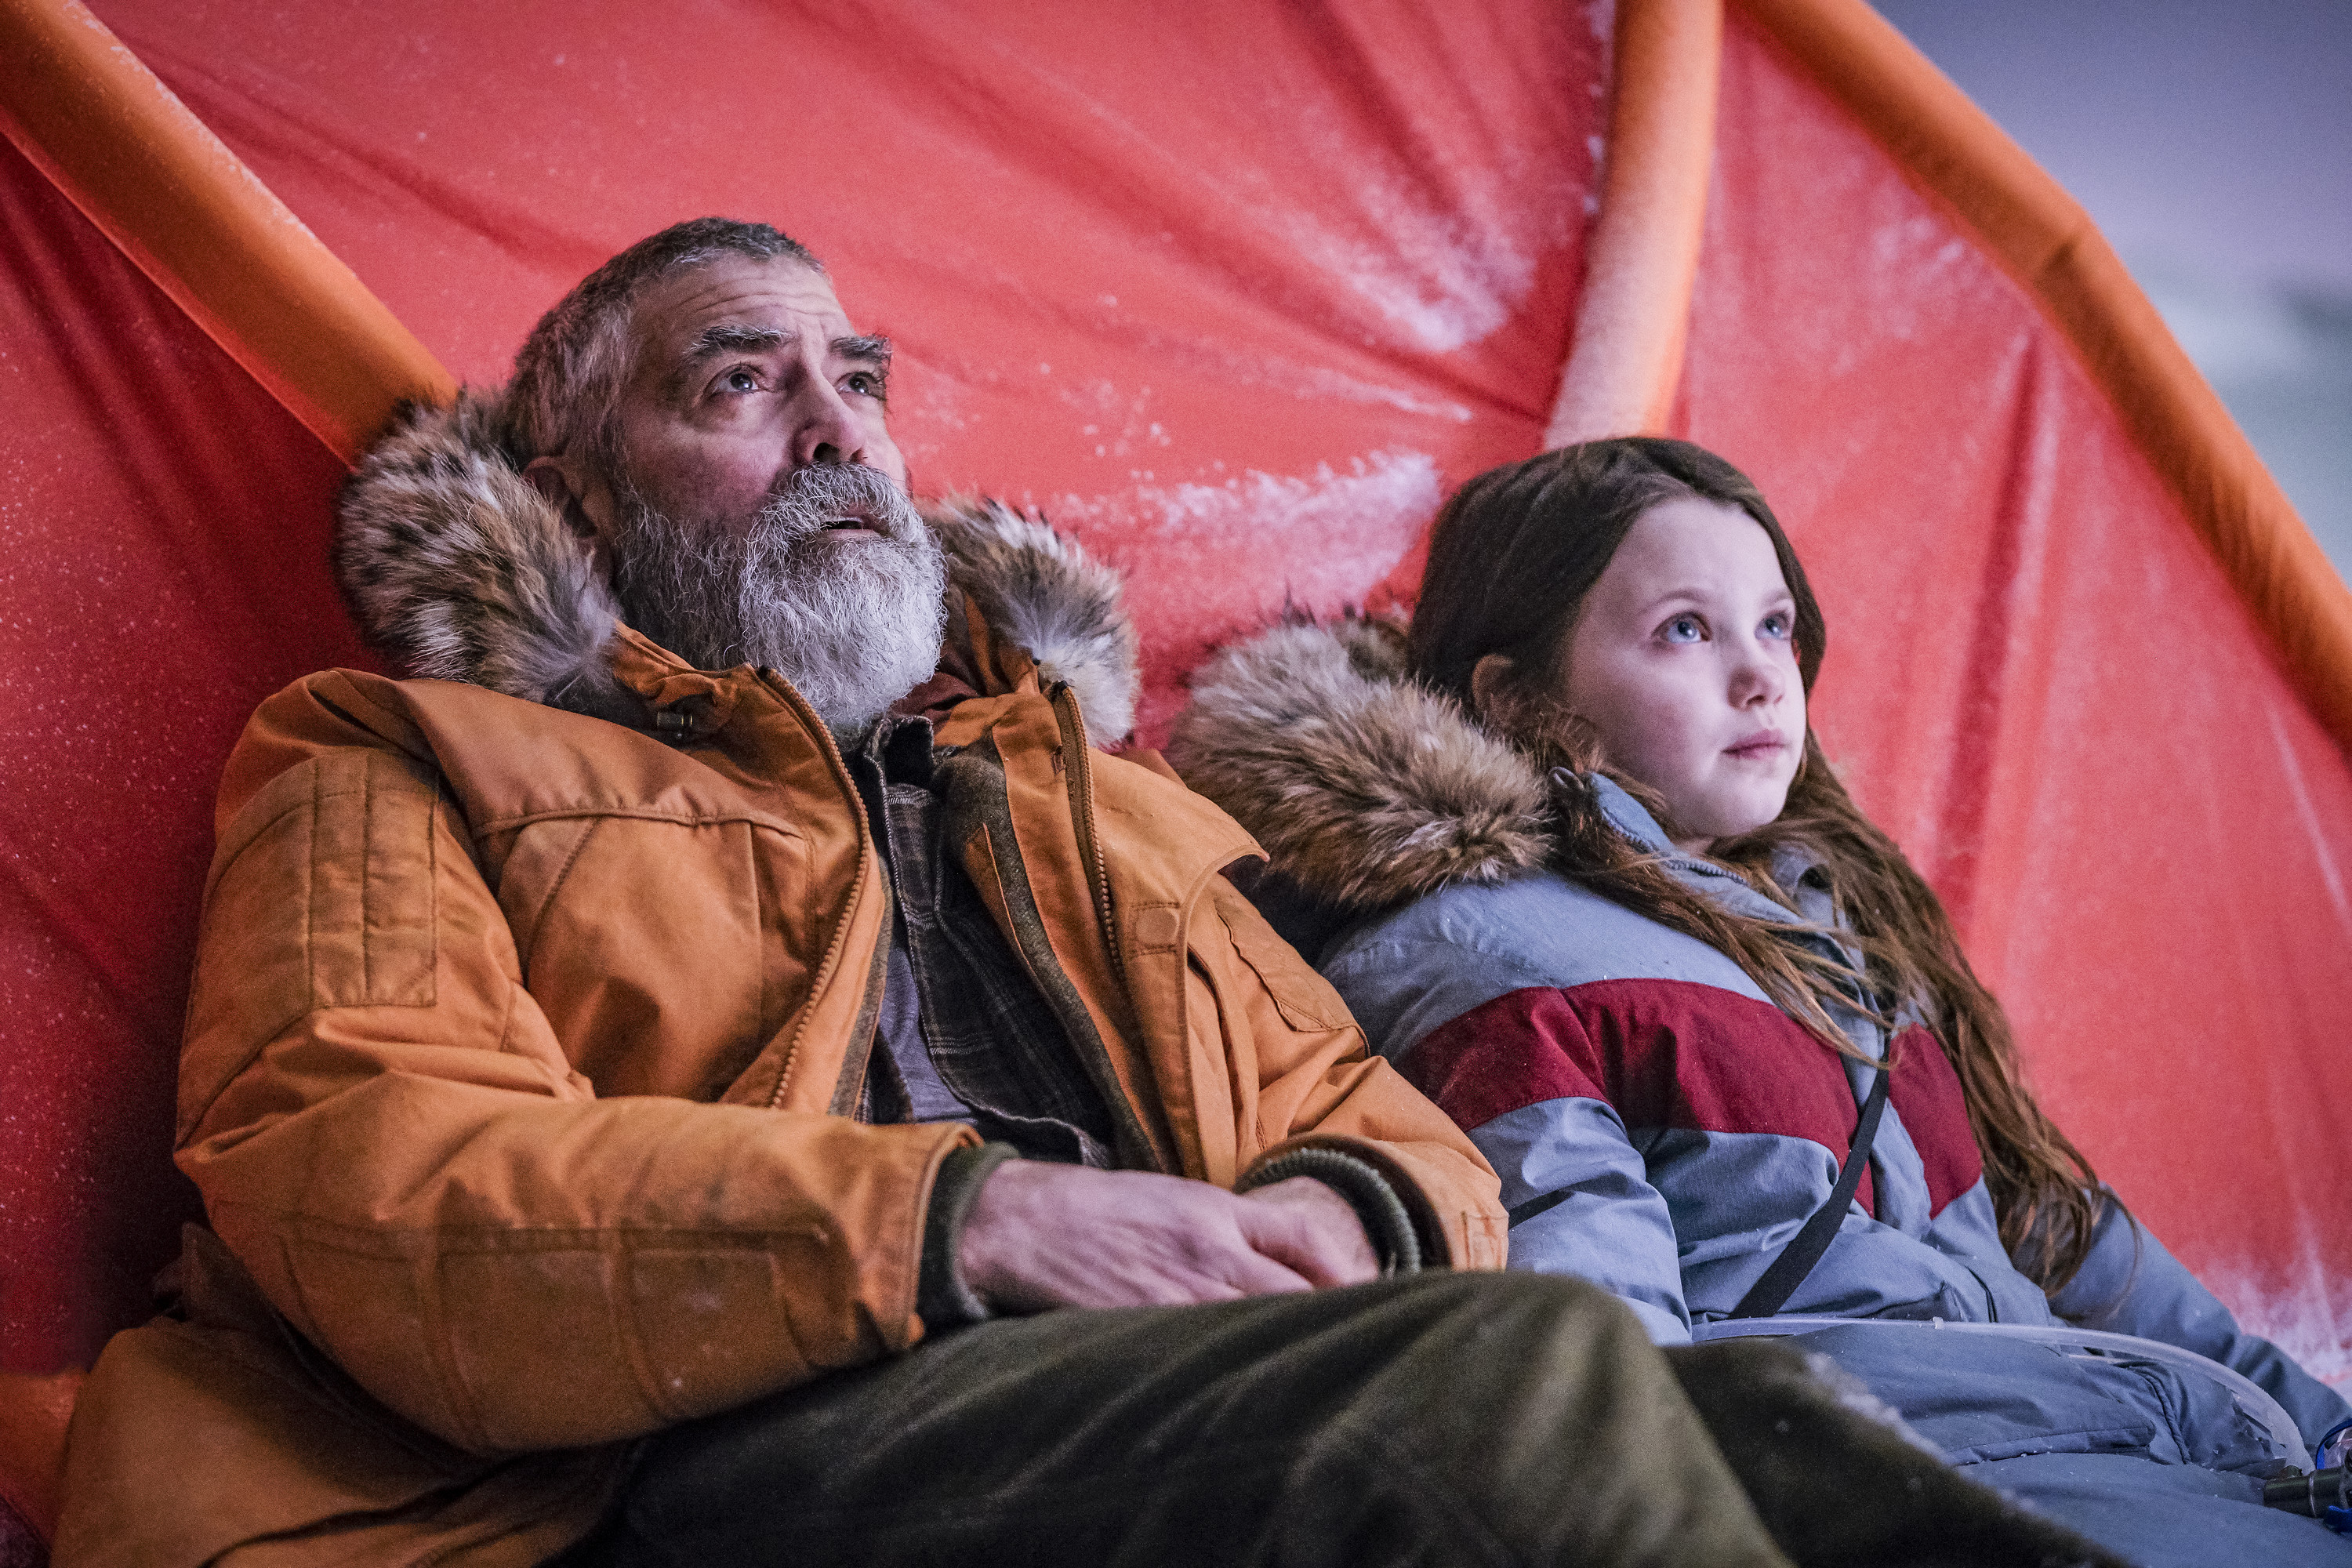 George Clooney and Caoilinn Springall on a perilous journey at the end of the world